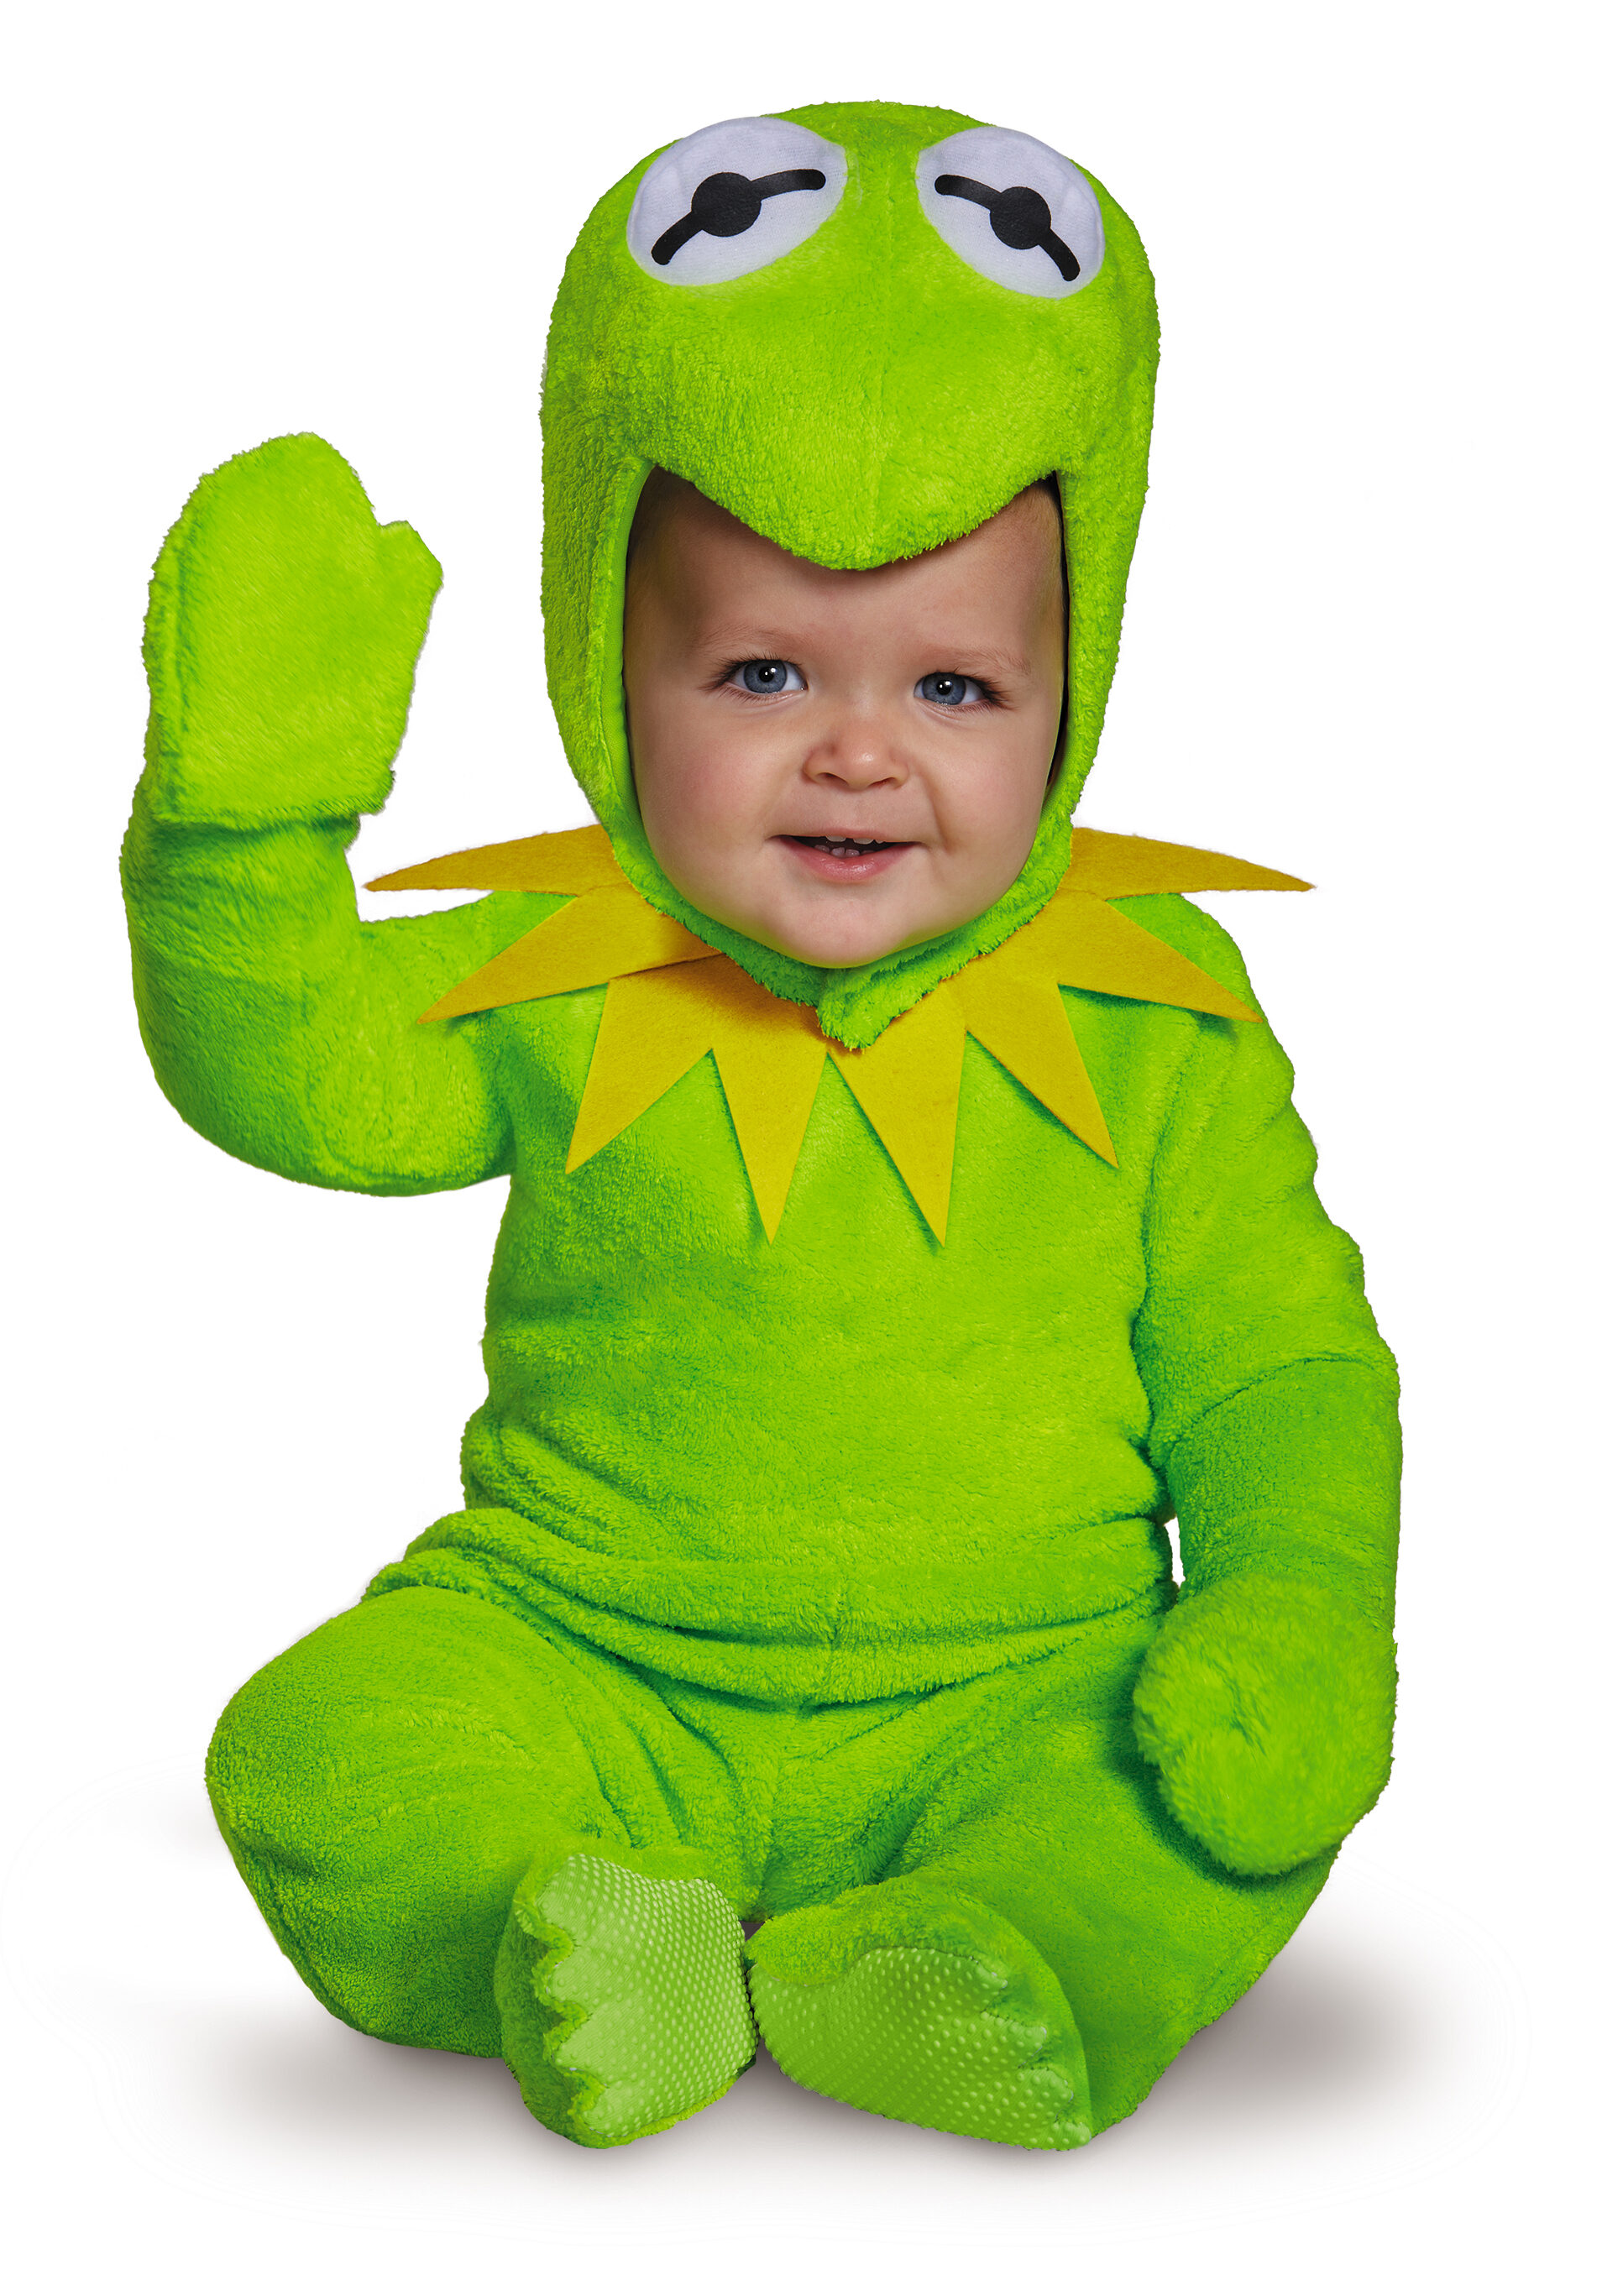 Kermit the Frog Baby Costume  sc 1 st  Mr. Costumes & Disney Baby Costumes - Mr. Costumes